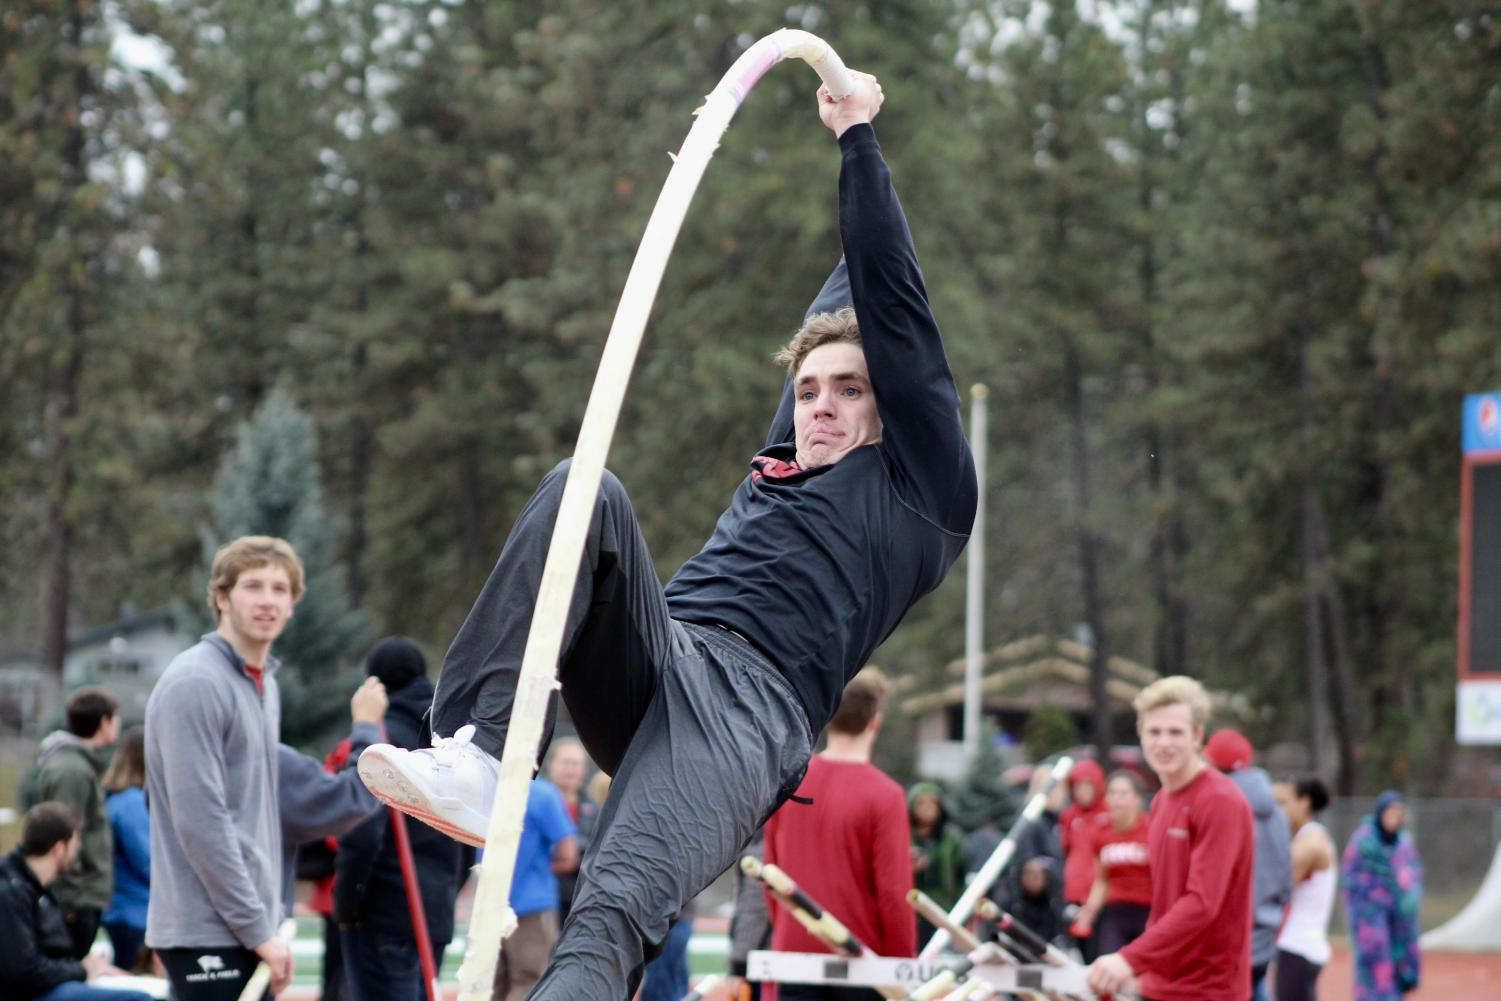 Senior Larry Still has battled through adversity to become EWU's top pole vaulter. At the 47 Pueller Invitational he set the school record vault of 17-feet-6.5-inches.